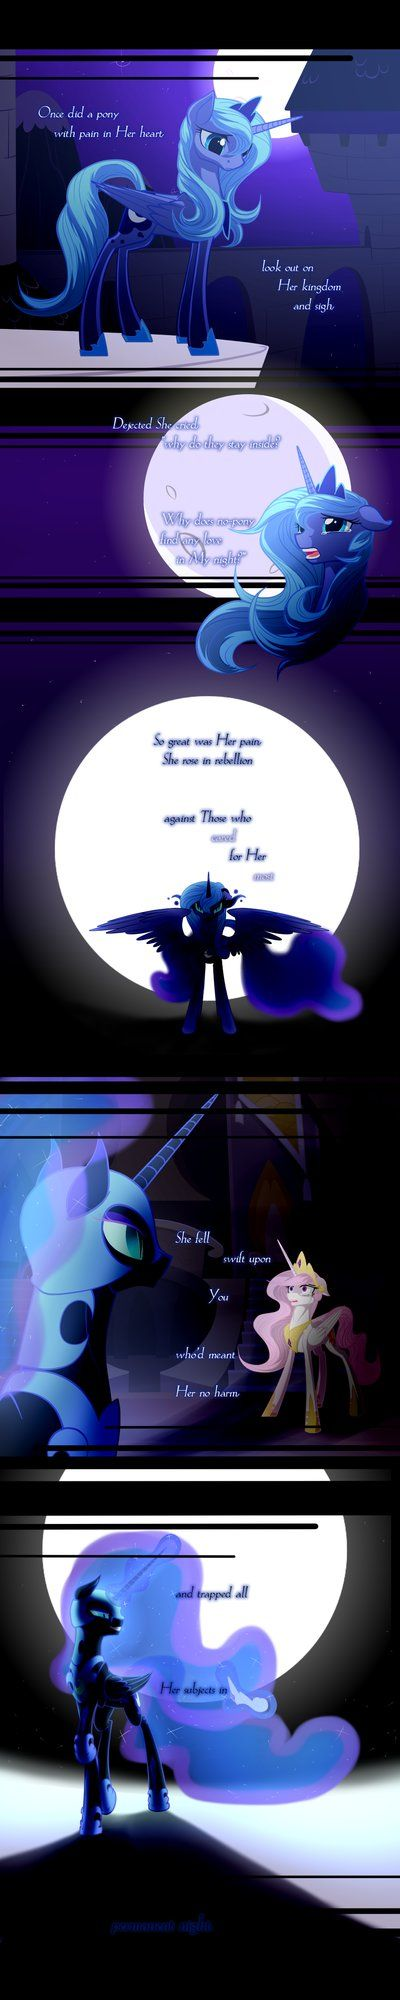 Luna's Reply Lyric Comic (pt. 2 of 7) by JazzyBrony on DeviantArt